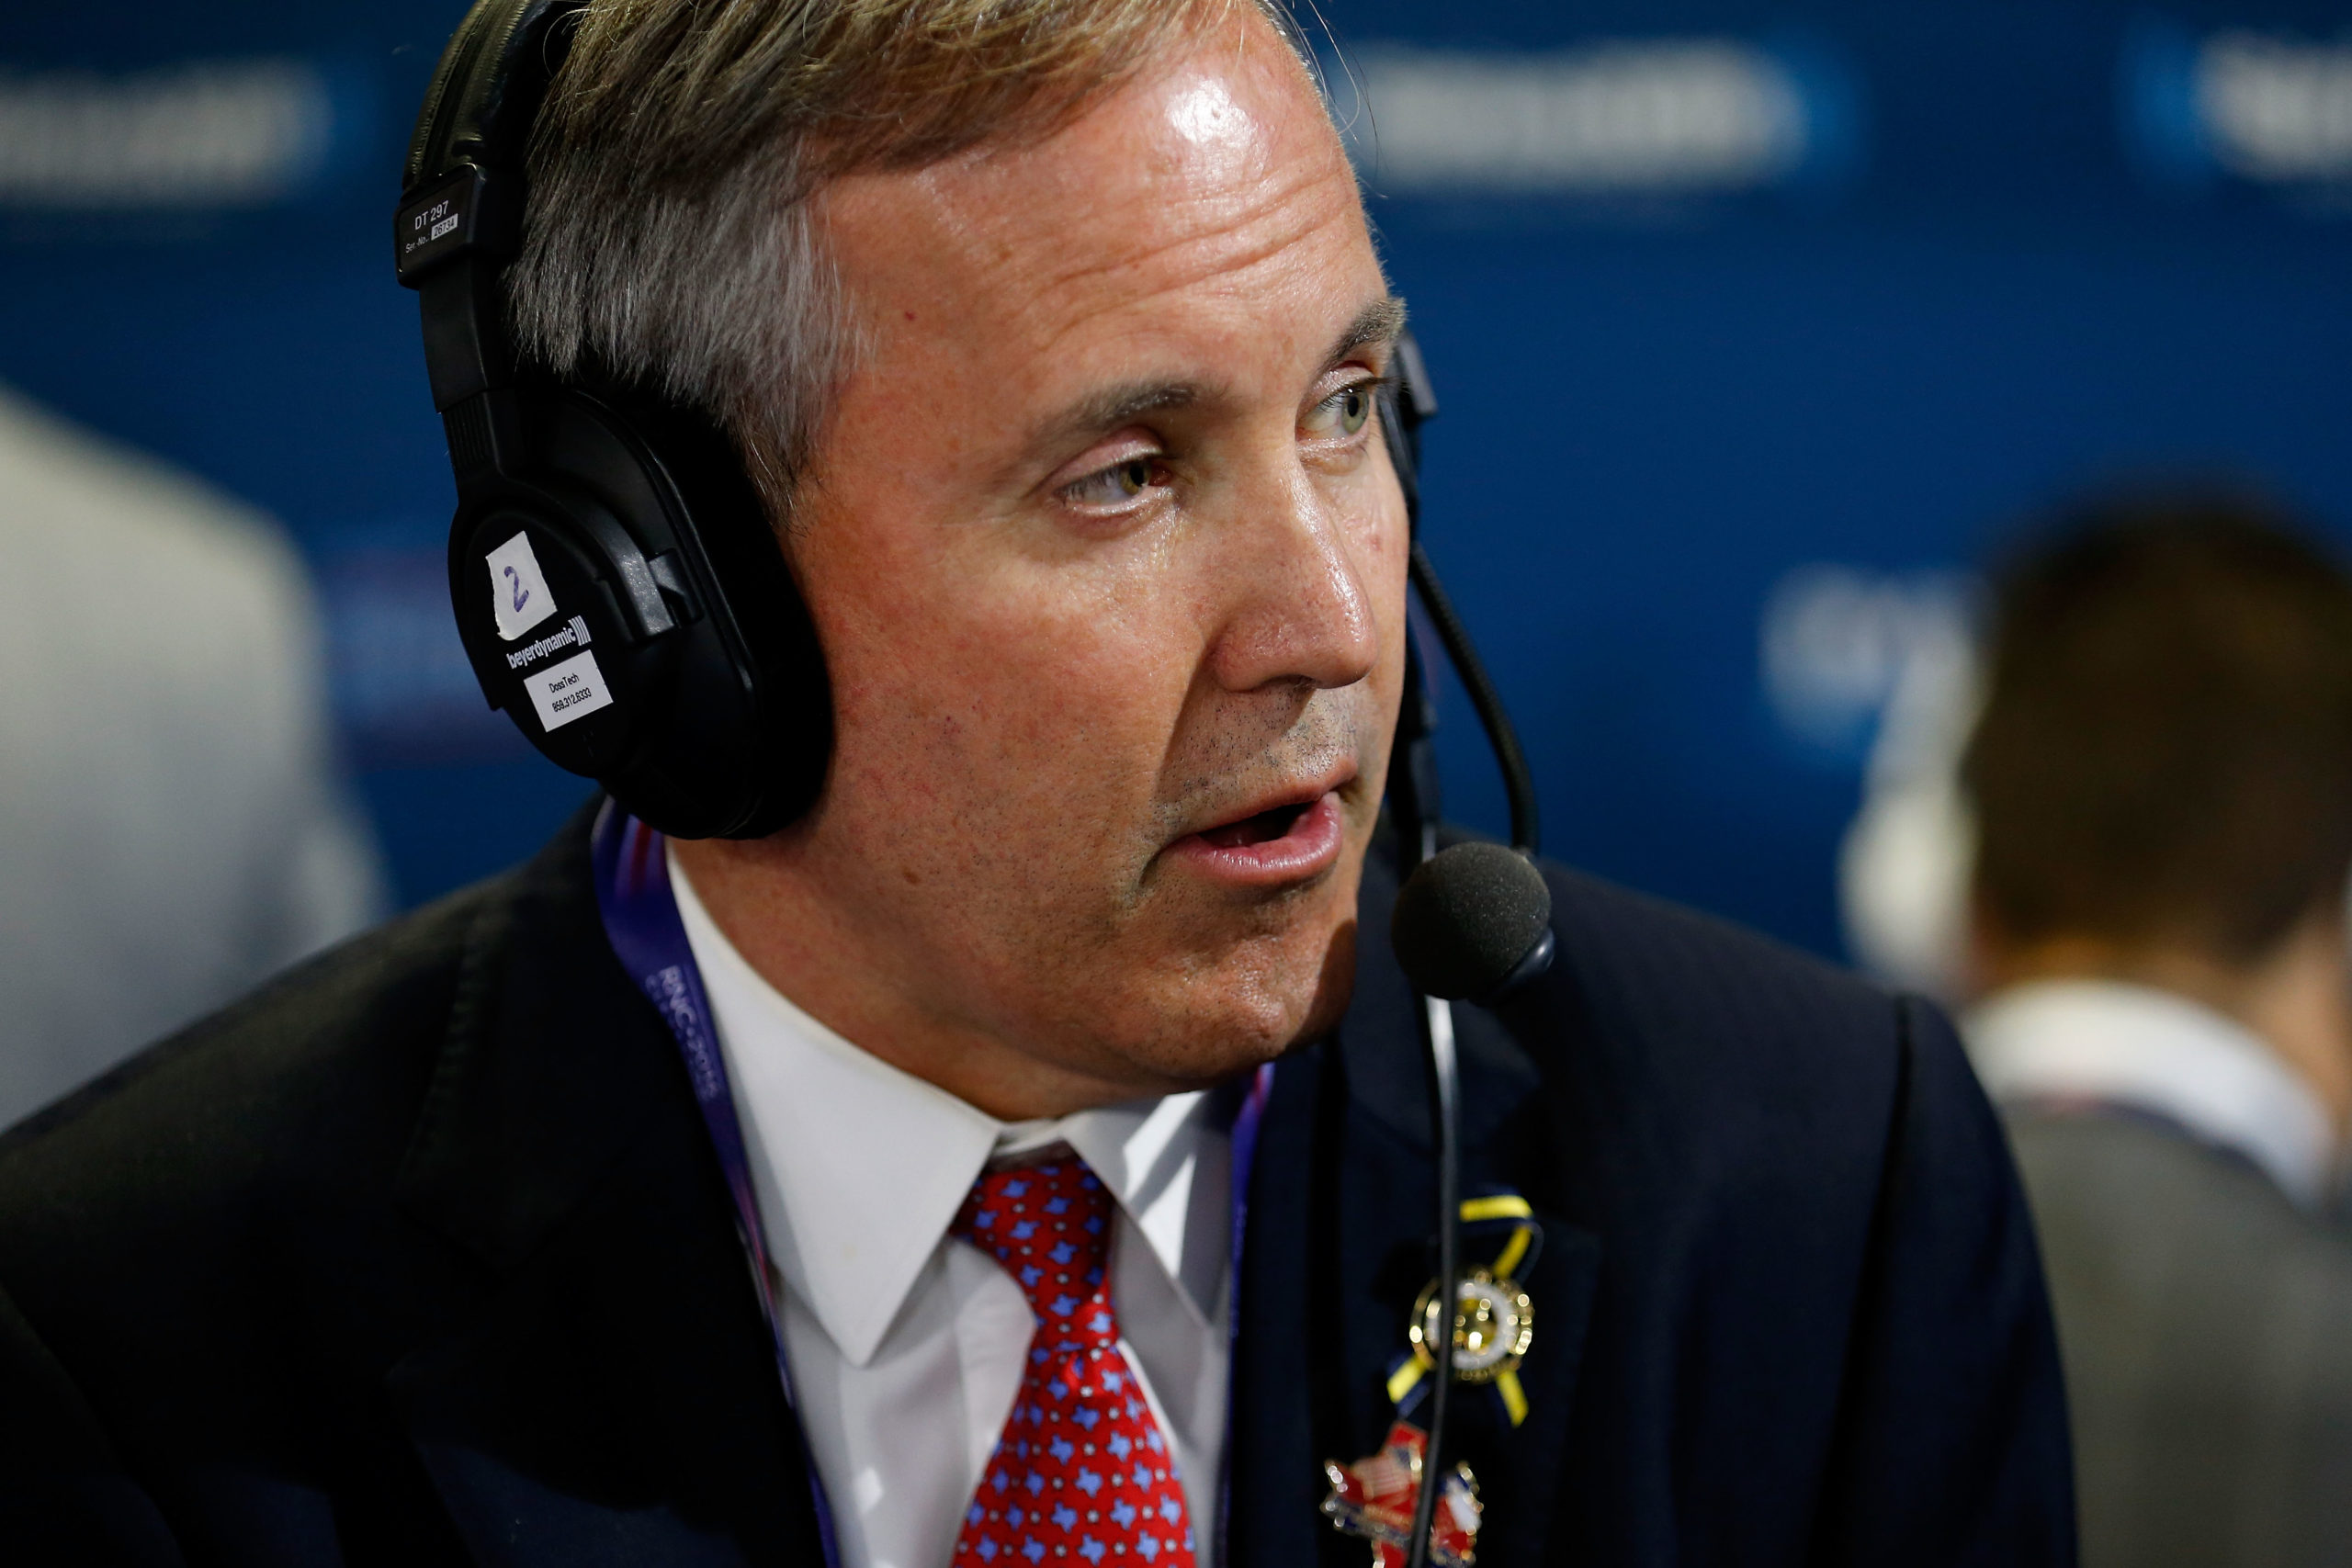 """CLEVELAND, OH - JULY 20: Texas Attorney General Ken Paxton sits down to talk with Andrew Wilkow on his show """"The Wilkow Majority"""" at Quicken Loans Arena on July 20, 2016 in Cleveland, Ohio. (Photo by Kirk Irwin/Getty Images for SiriusXM)"""